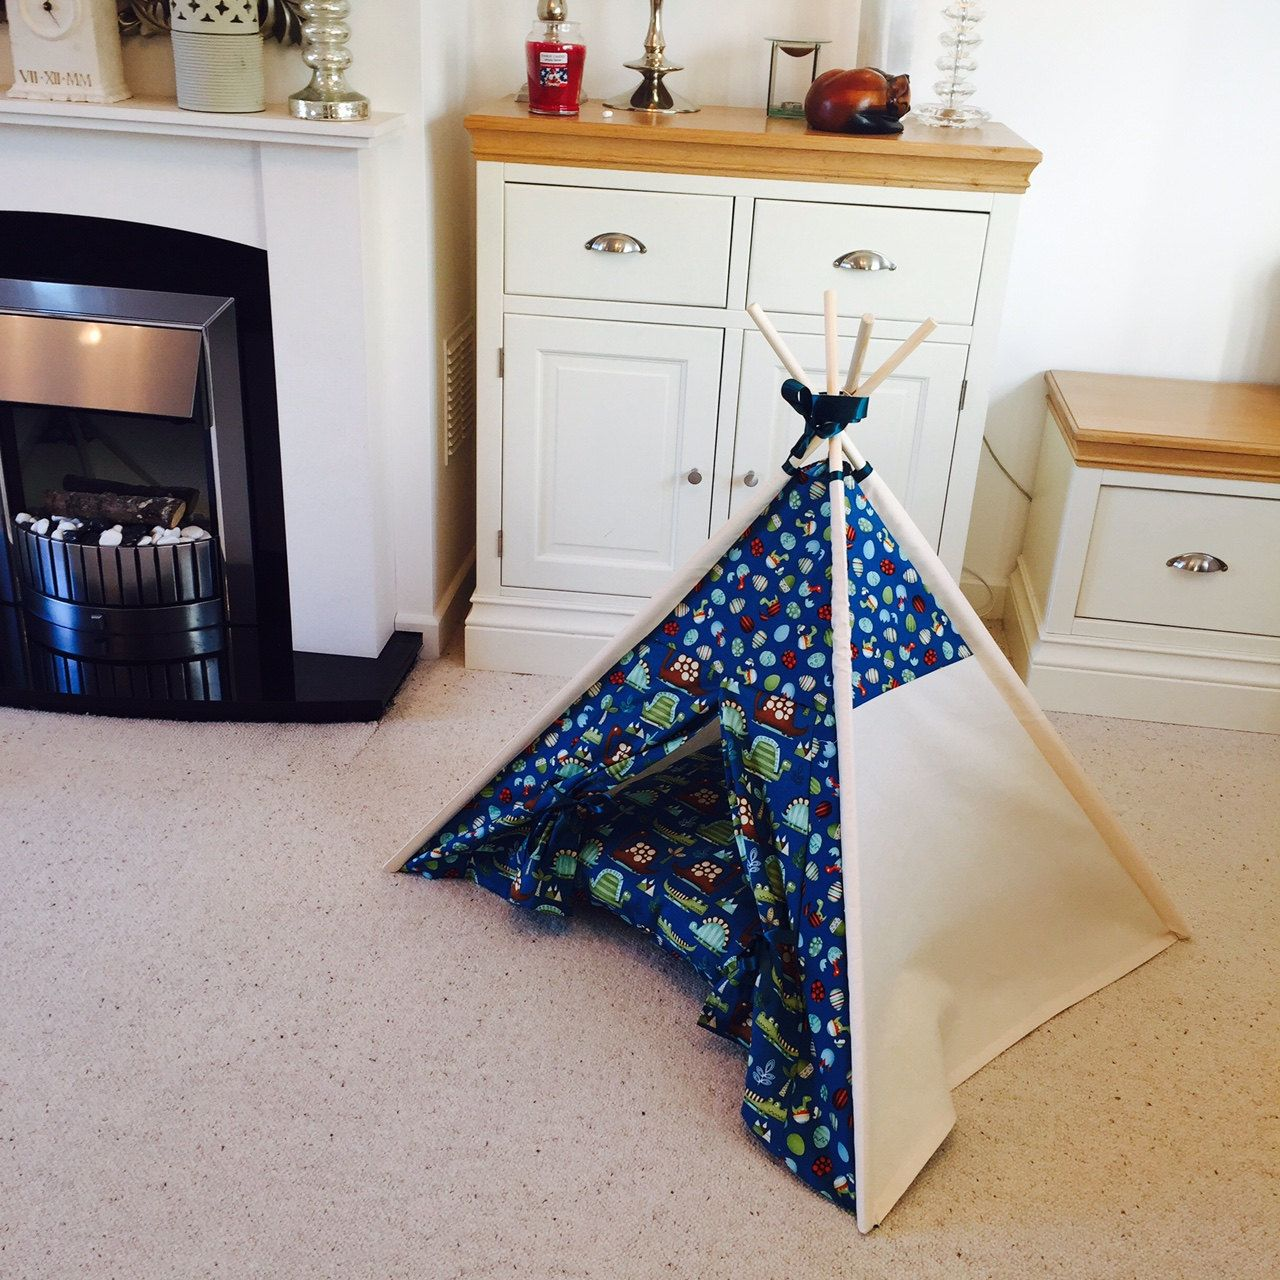 Medium Dog Bed Dog Teepee Tent Tent For Dogs Dog Bed Dog & Medium Dog Bed Dog Teepee Tent Tent For Dogs Dog Bed Dog House ...